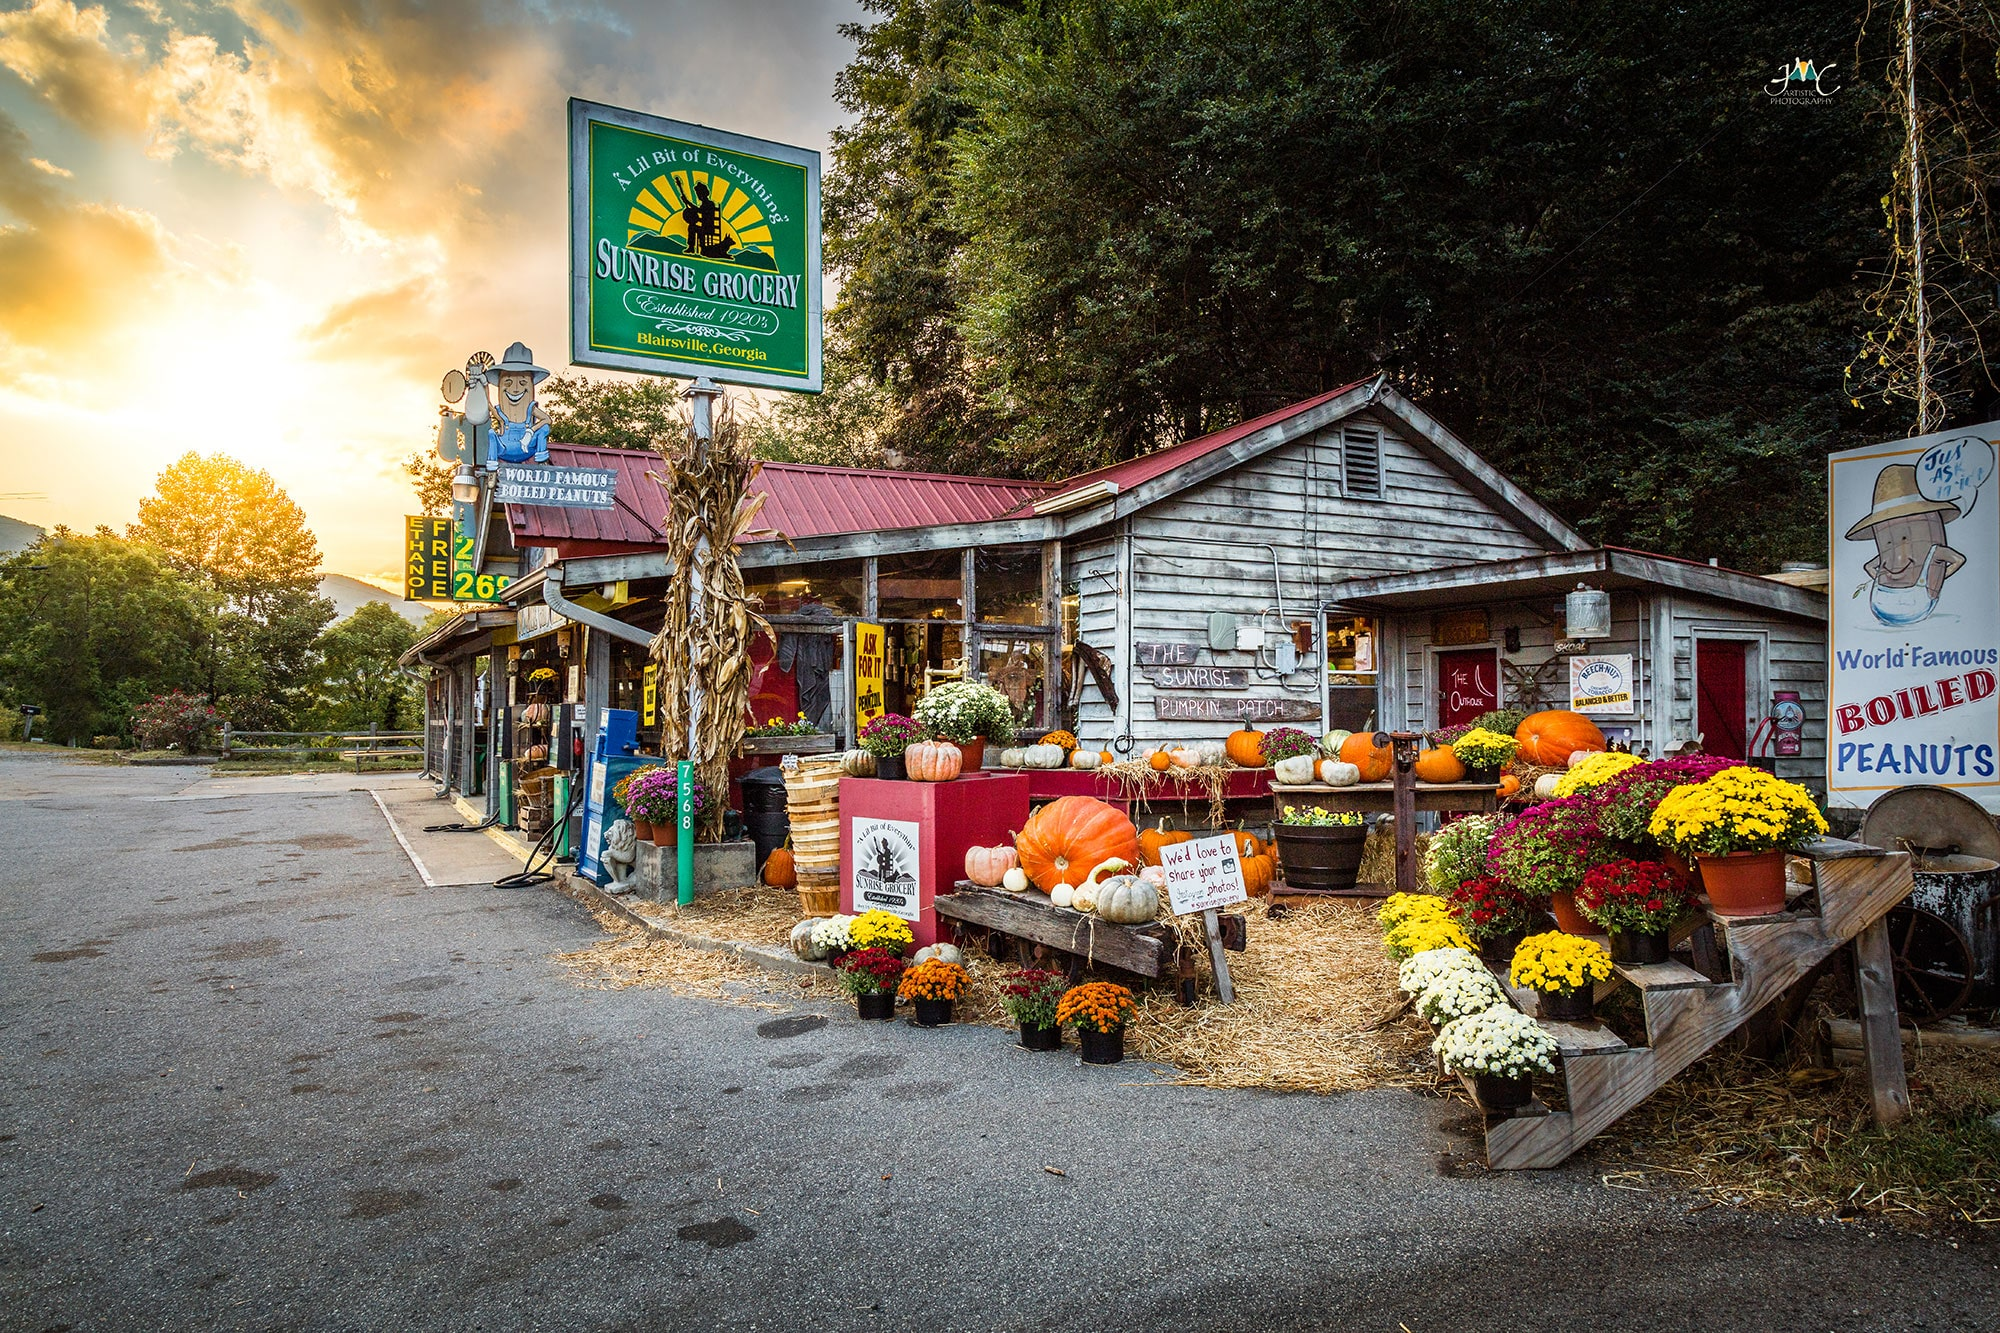 Sunrise Grocery in Blairsville, Georgia. Photo by Jason Clemmons